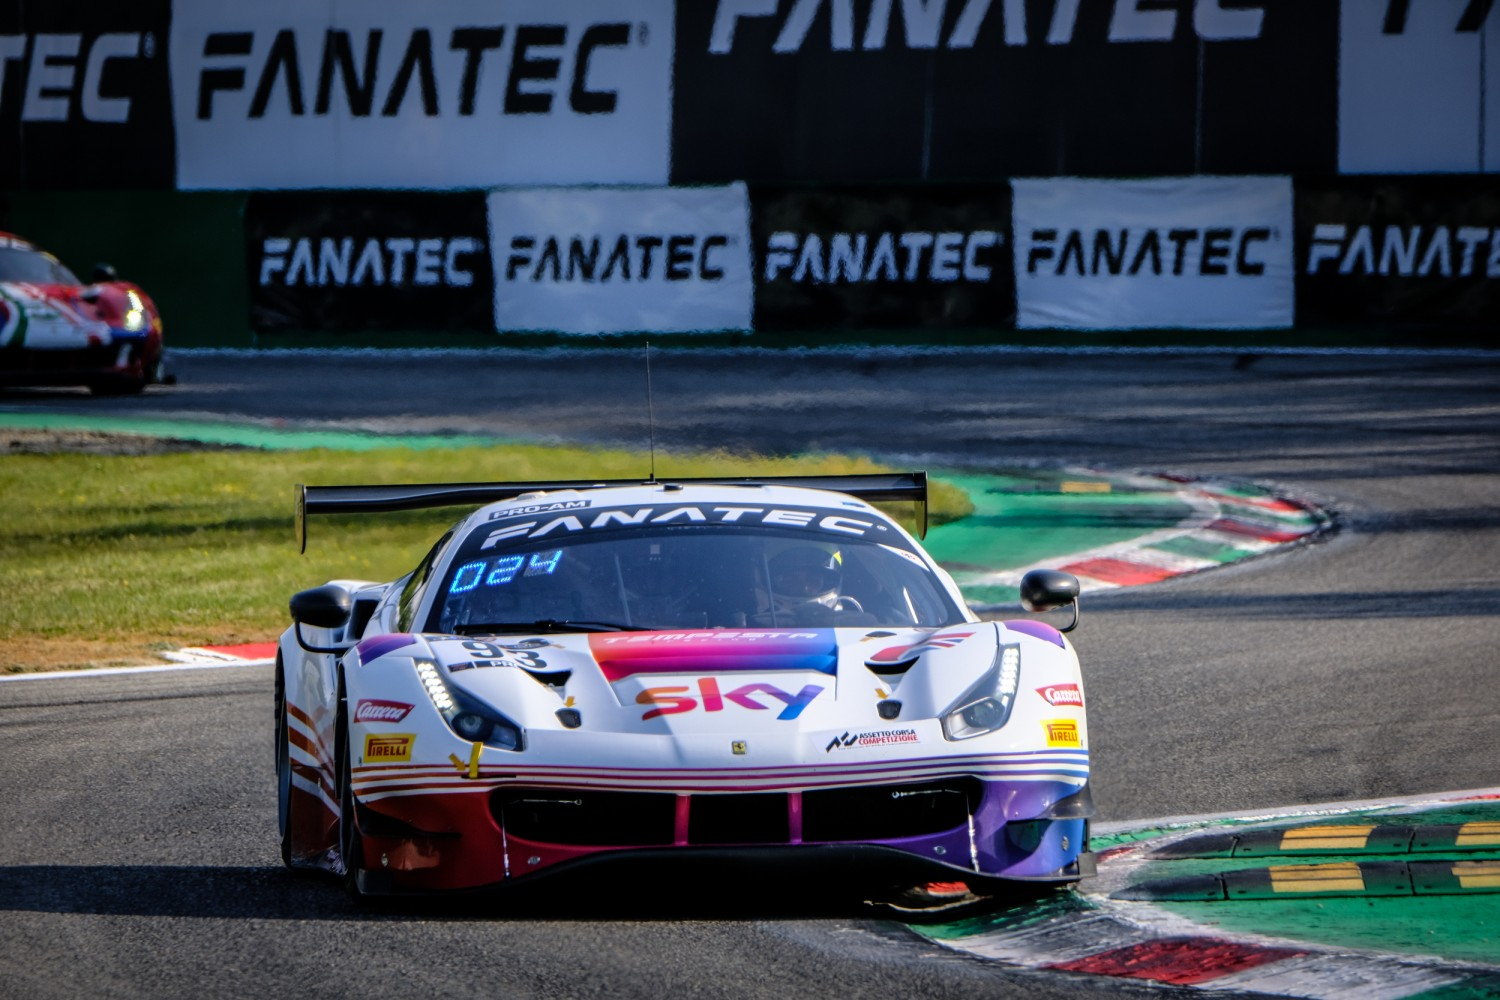 Sky Deutschland to broadcast Fanatec GT World Challenge Europe Powered by AWS in 2021